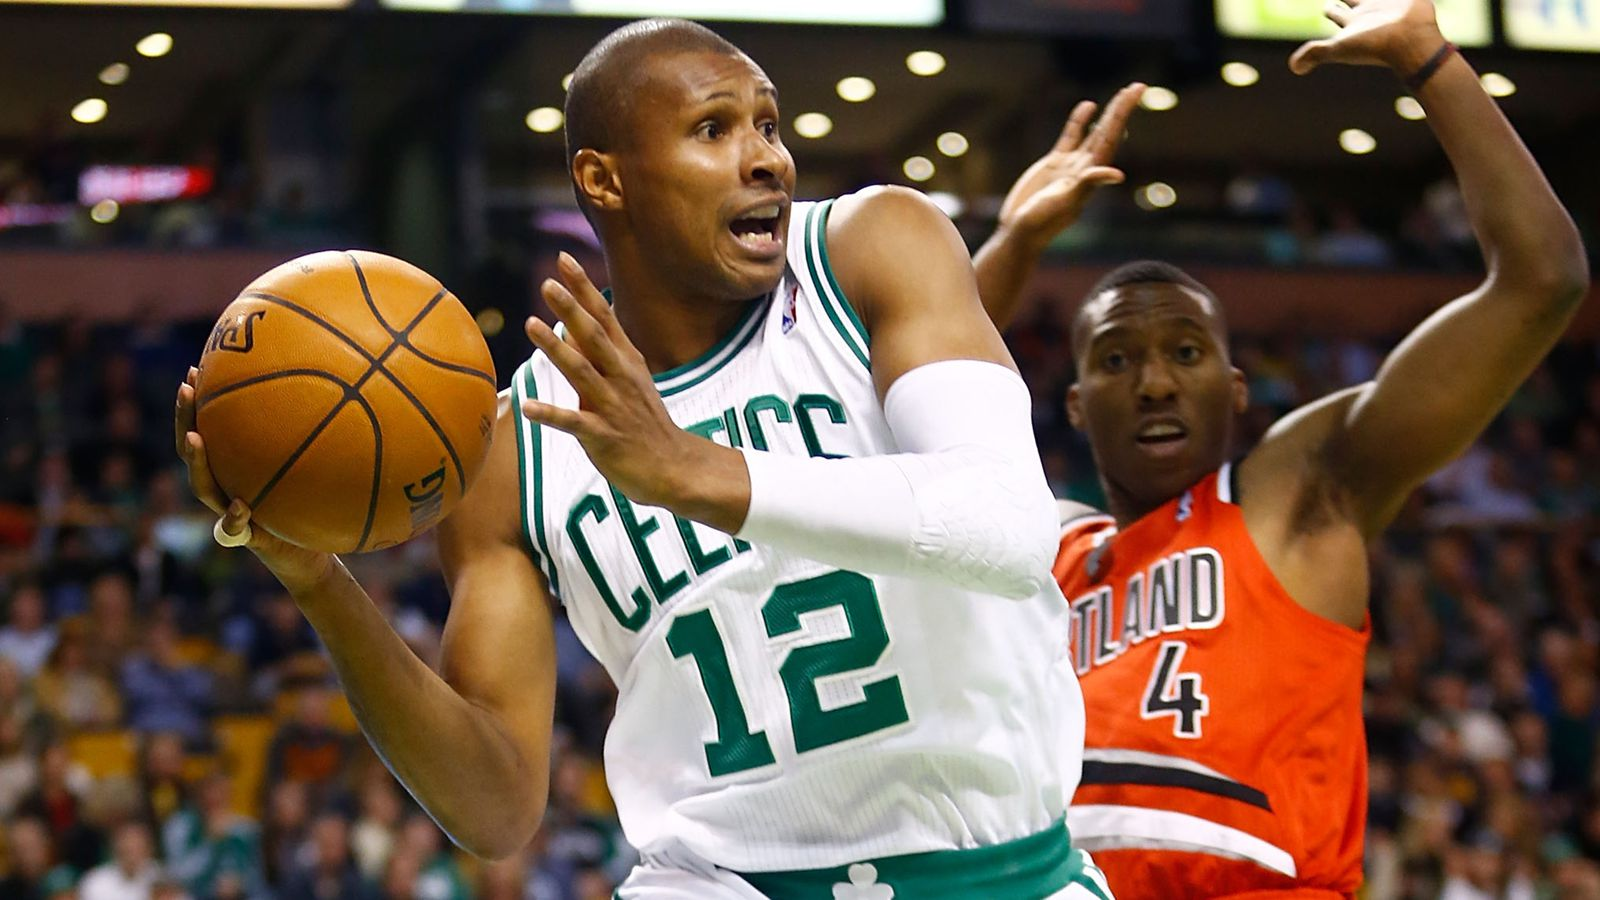 Every player to wear 12 on the Celtics as of 12 12 12 CelticsBlog